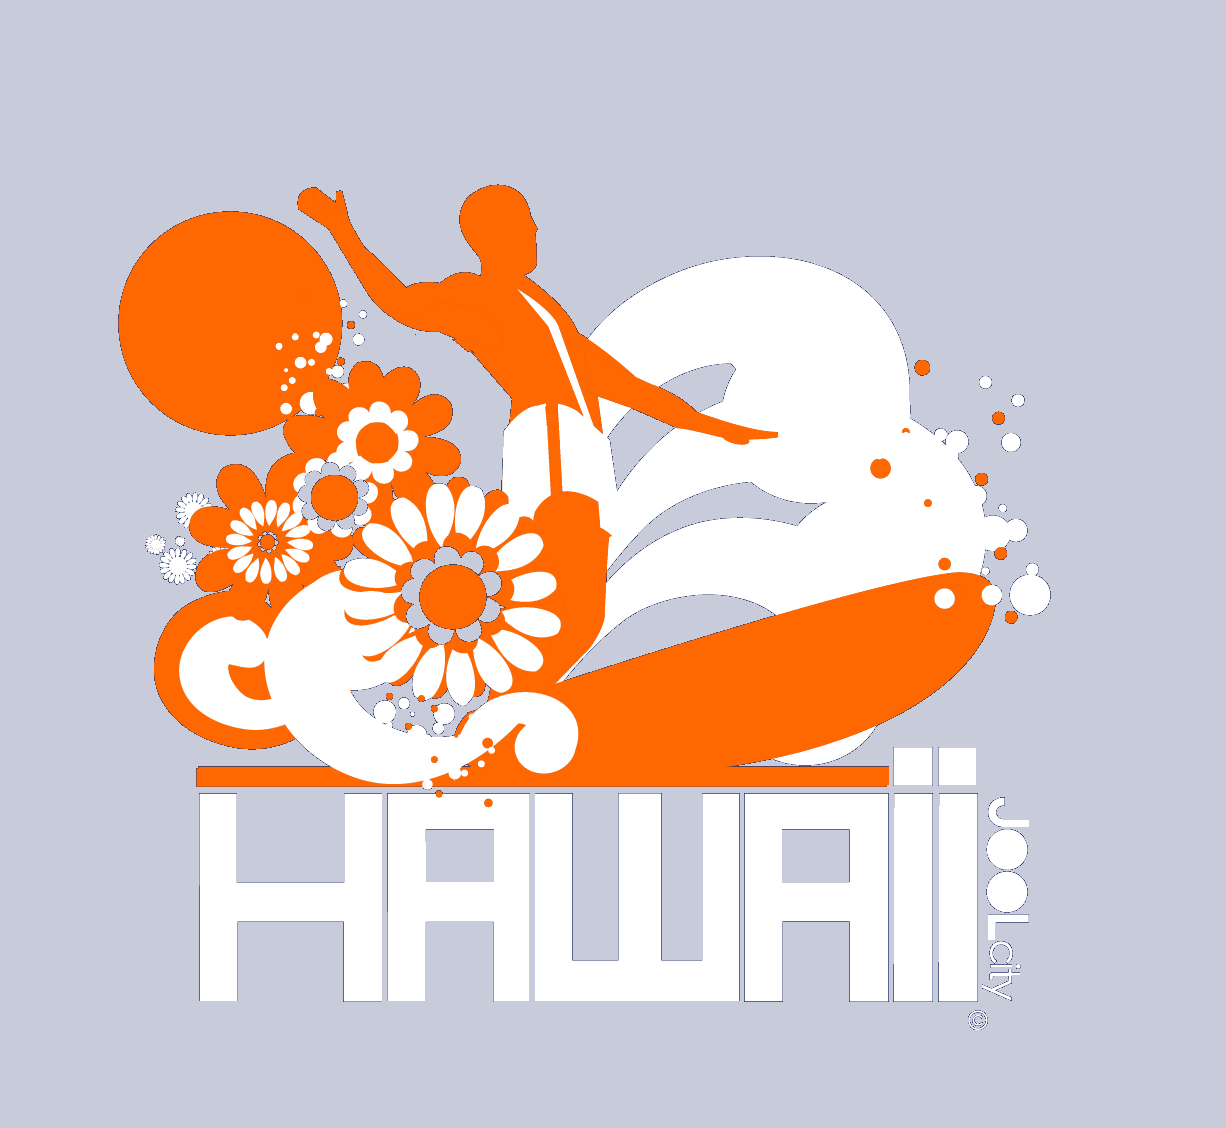 Hawaii  Longboard Love  Women's   Short Sleeve T-Shirt T-Shirt  designed by JOOLcity